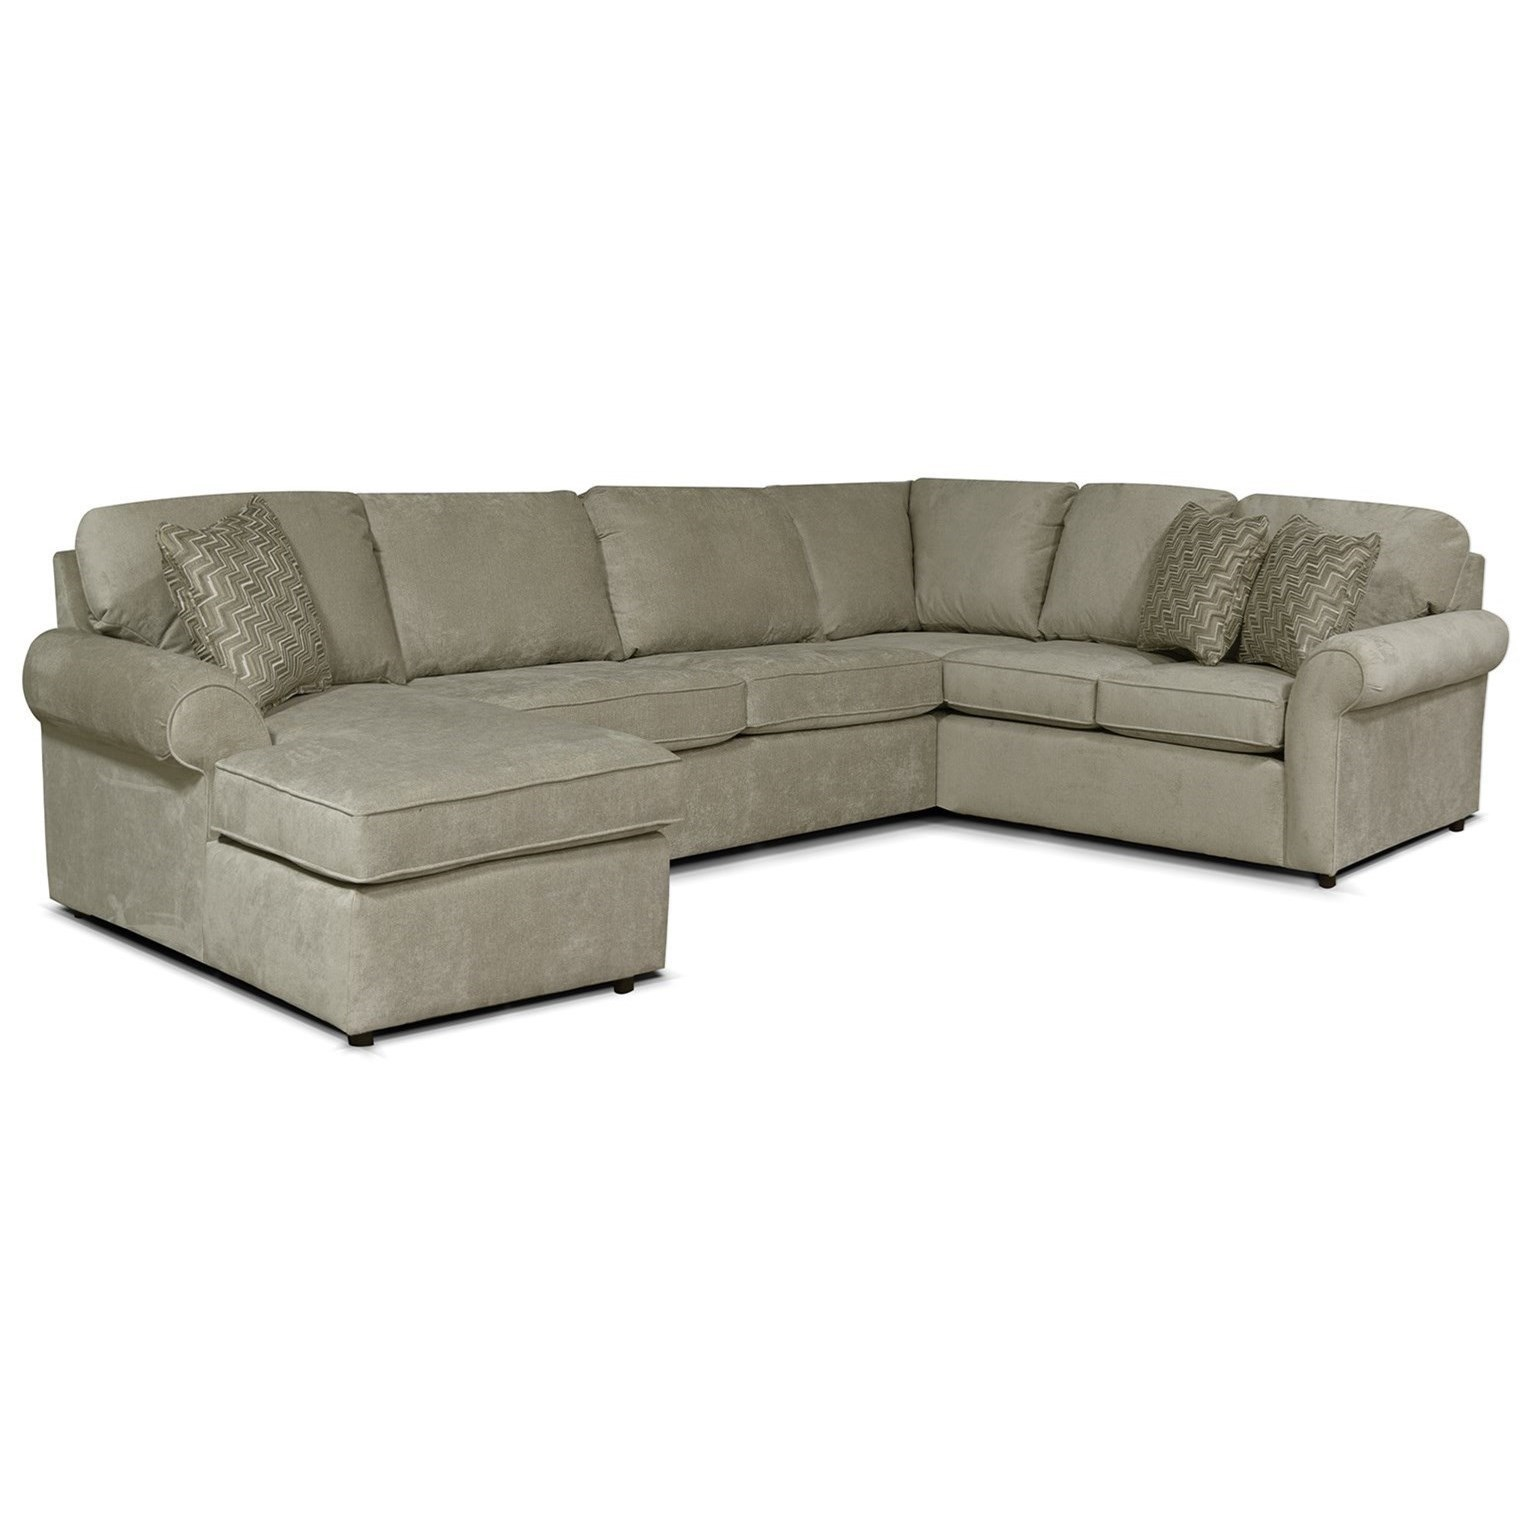 Magnificent Malibu 5 6 Seat Left Side Chaise Sectional By England At Gill Brothers Furniture Ncnpc Chair Design For Home Ncnpcorg